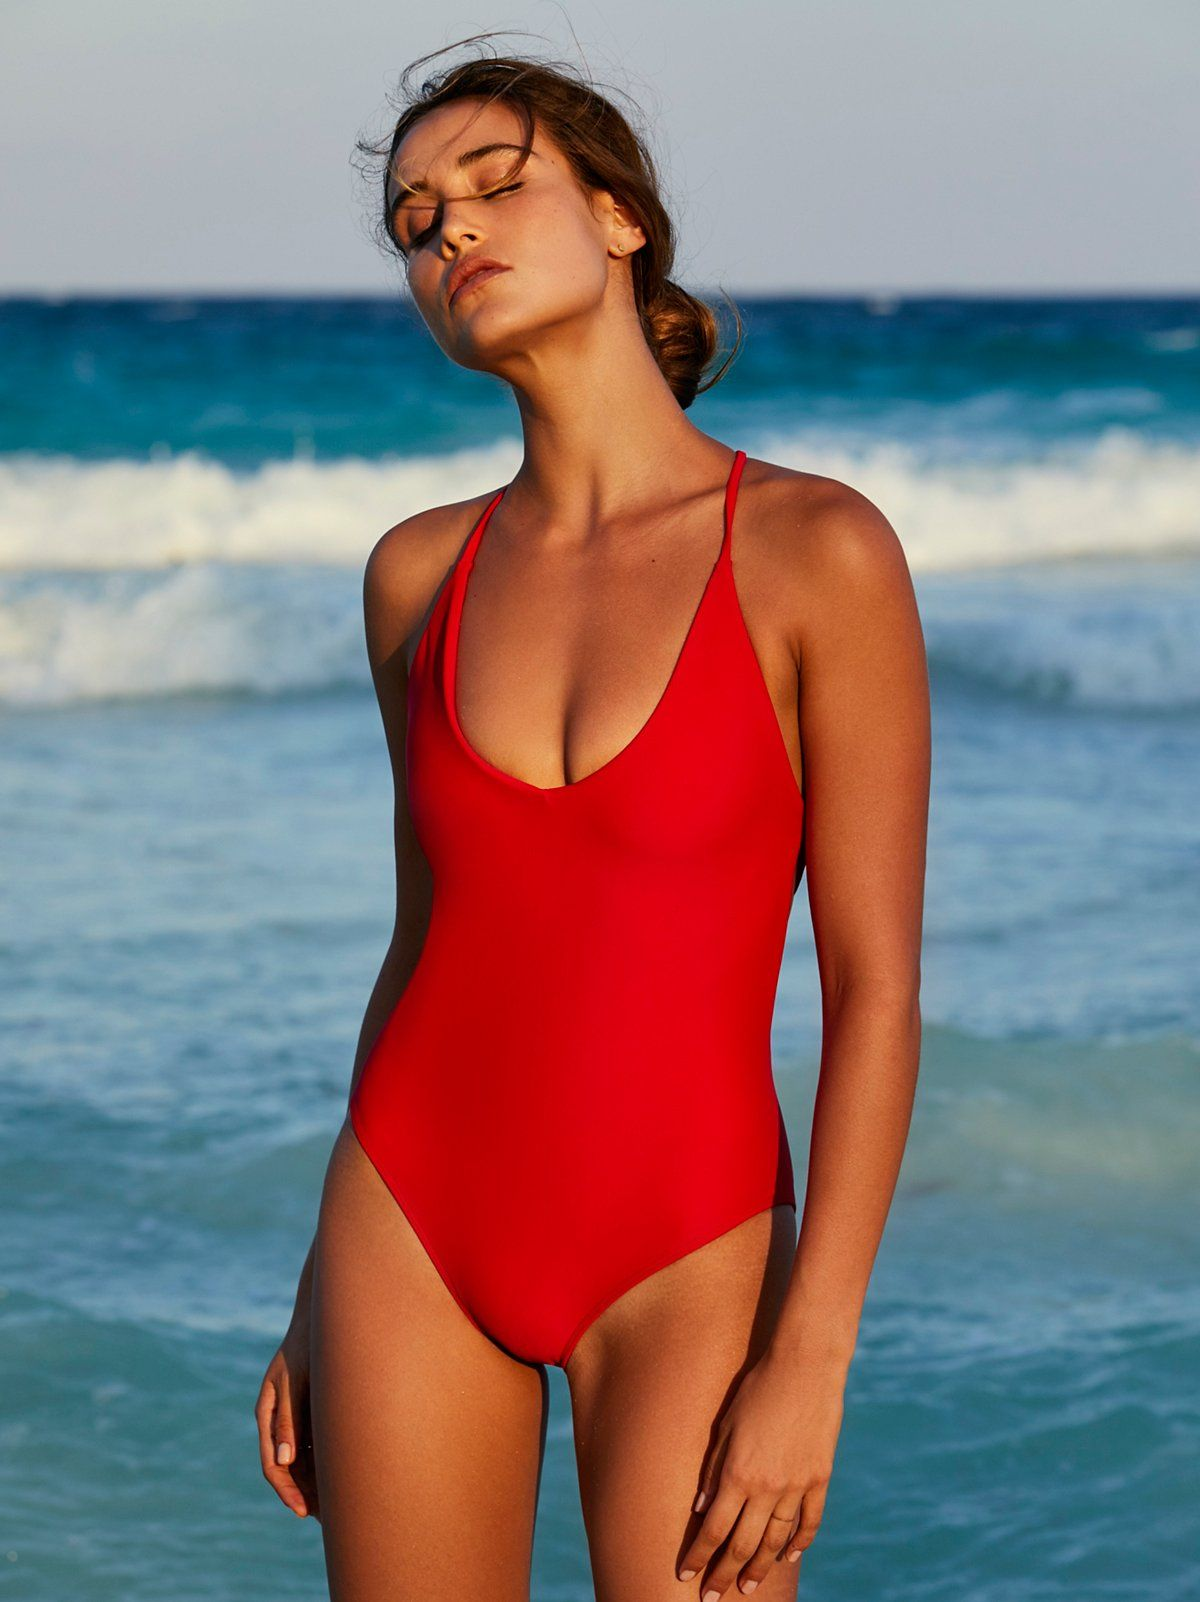 2c24adedcc38c Farrah One Piece Swimsuit | American made solid one piece swimsuit  featuring a plunging V-neckline. * Open strappy back * Cheeky bottom fit *  High cut ...